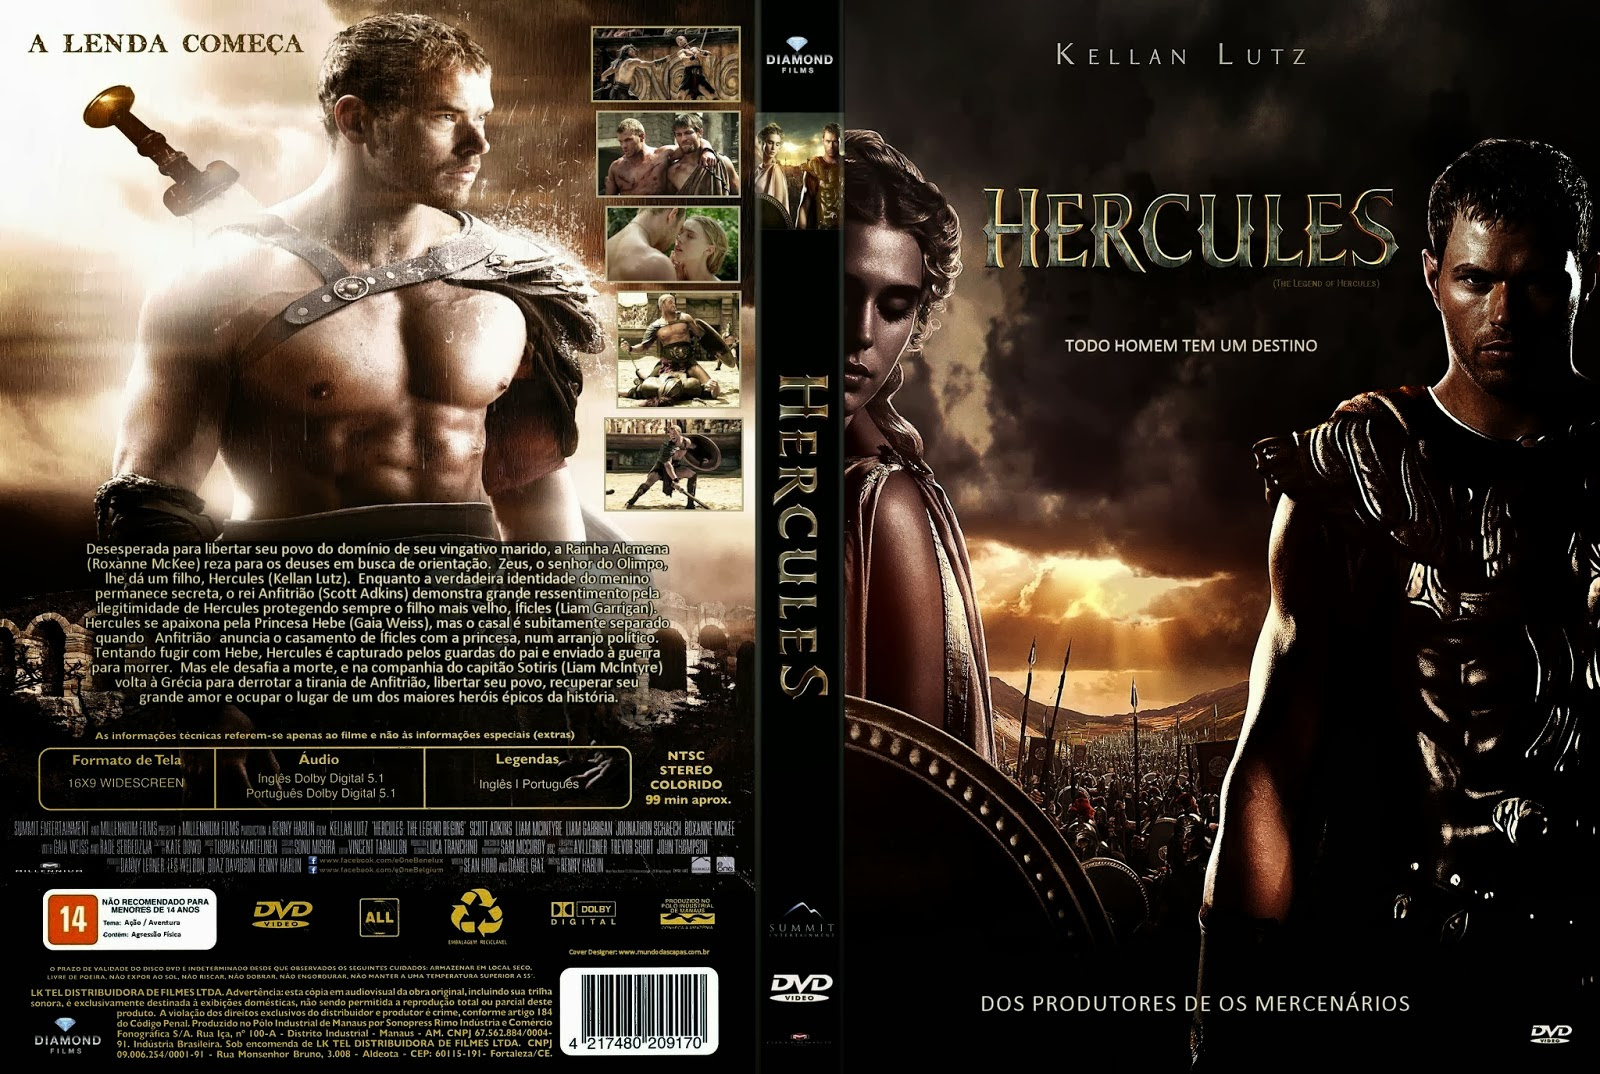 Hércules (The Legend of Hercules) Torrent – BluRay 720p Dual Audio (2014)